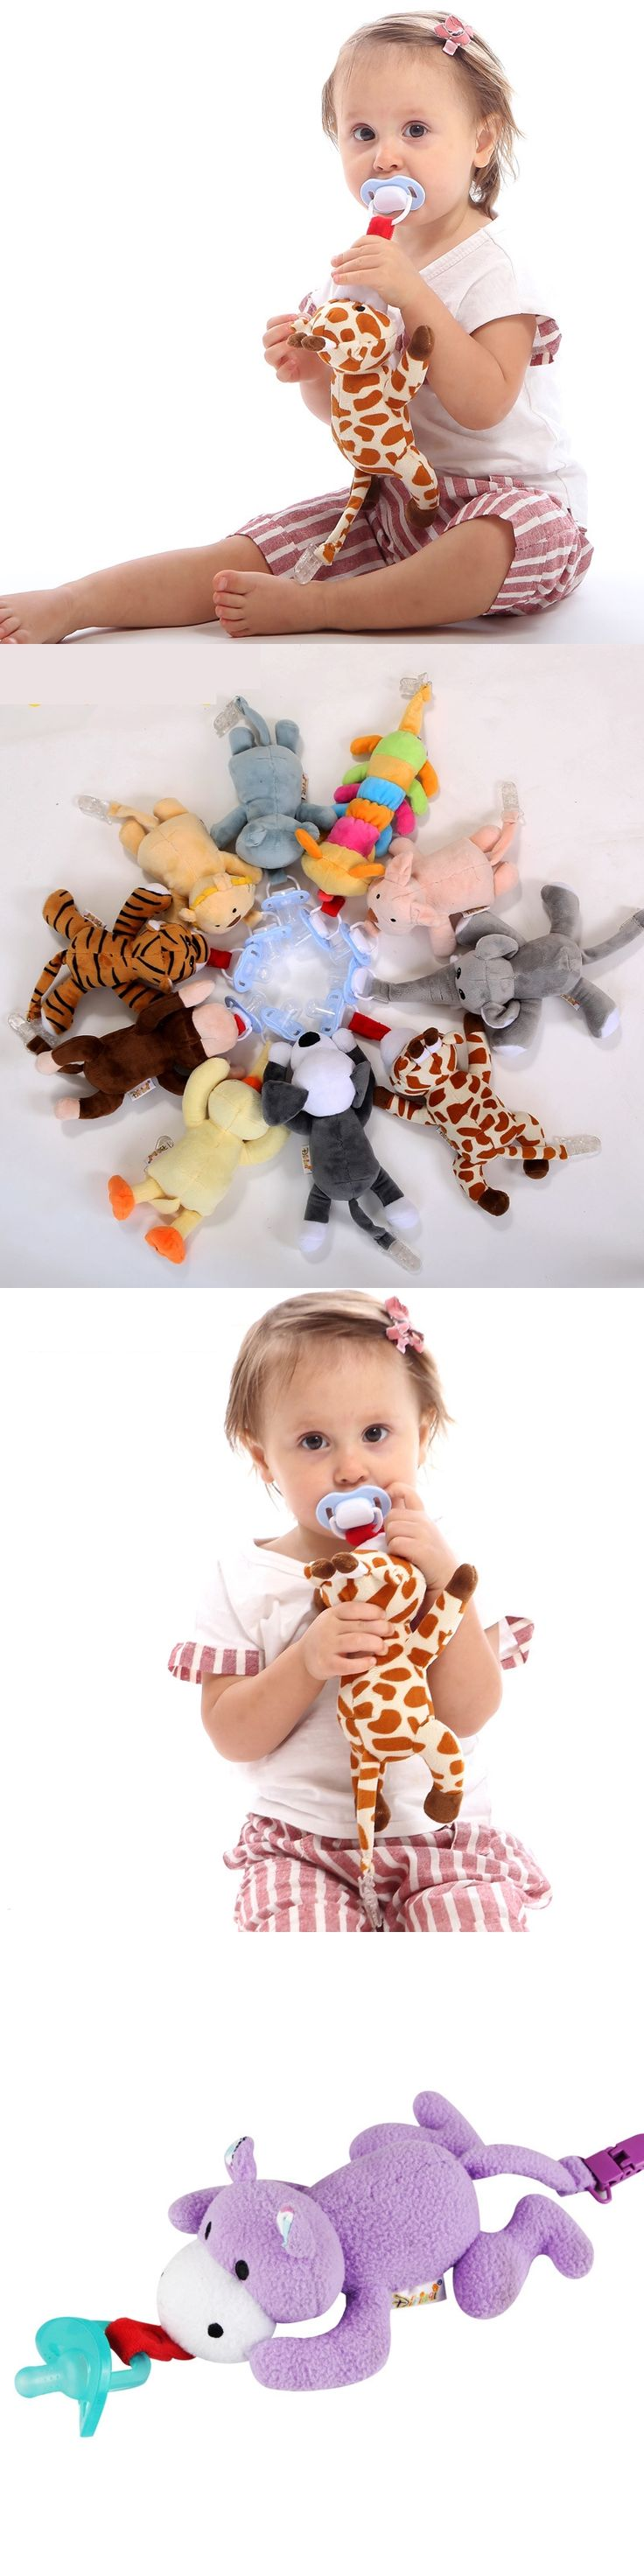 stuffed animal pacifier Baby pacifier plush toy Dog weasel giraffe tiger funny pacifier toy silicone animal teether silicone